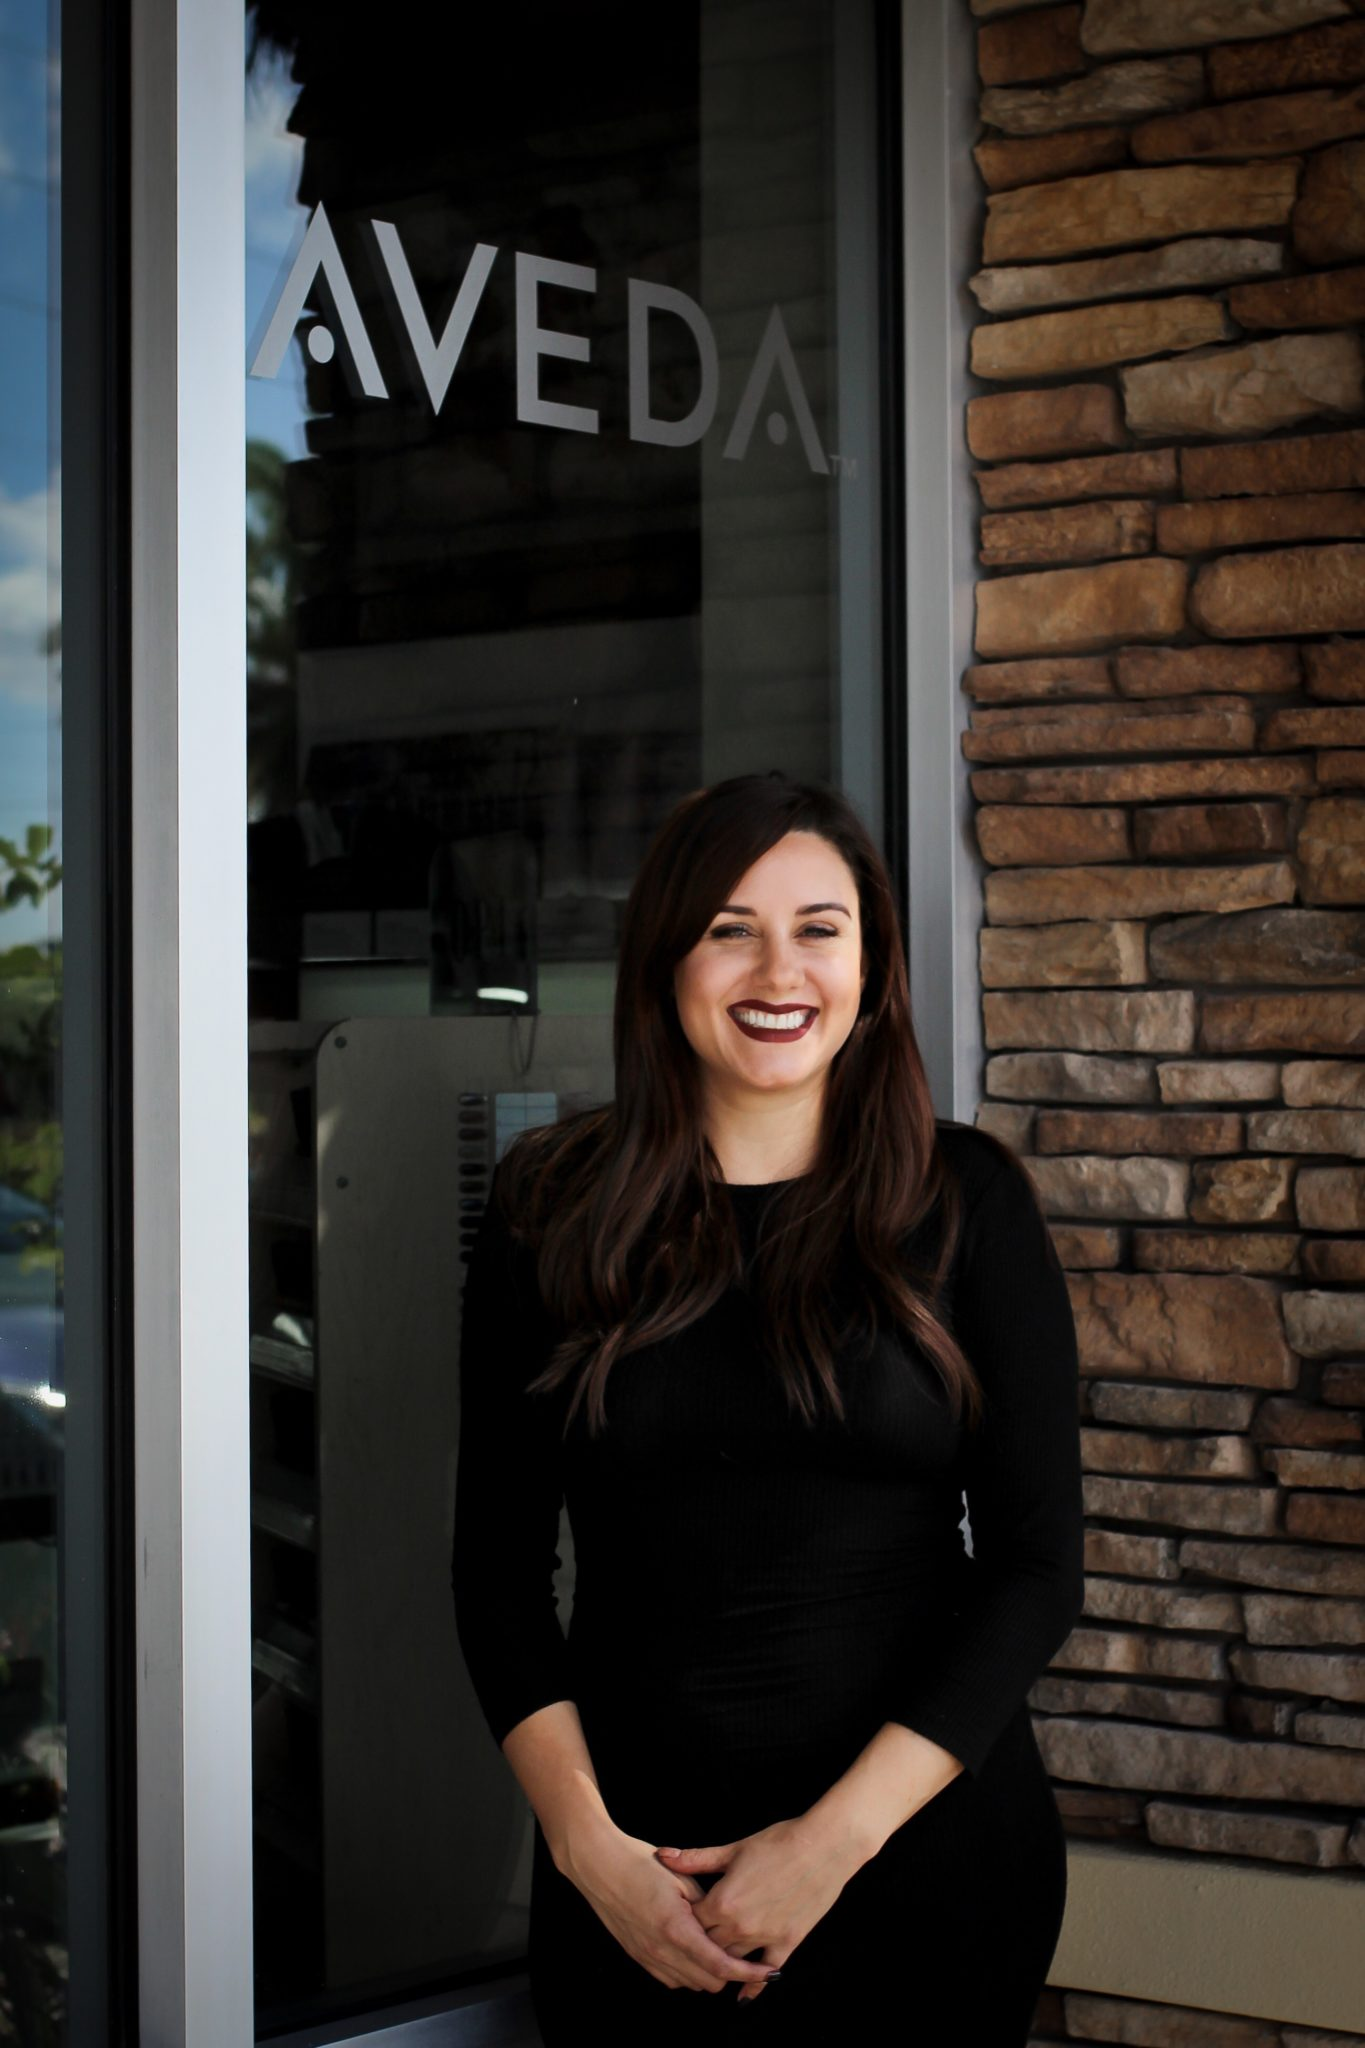 WHOLE AVEDA SALON AND SPA | OLDSMAR FLORIDA